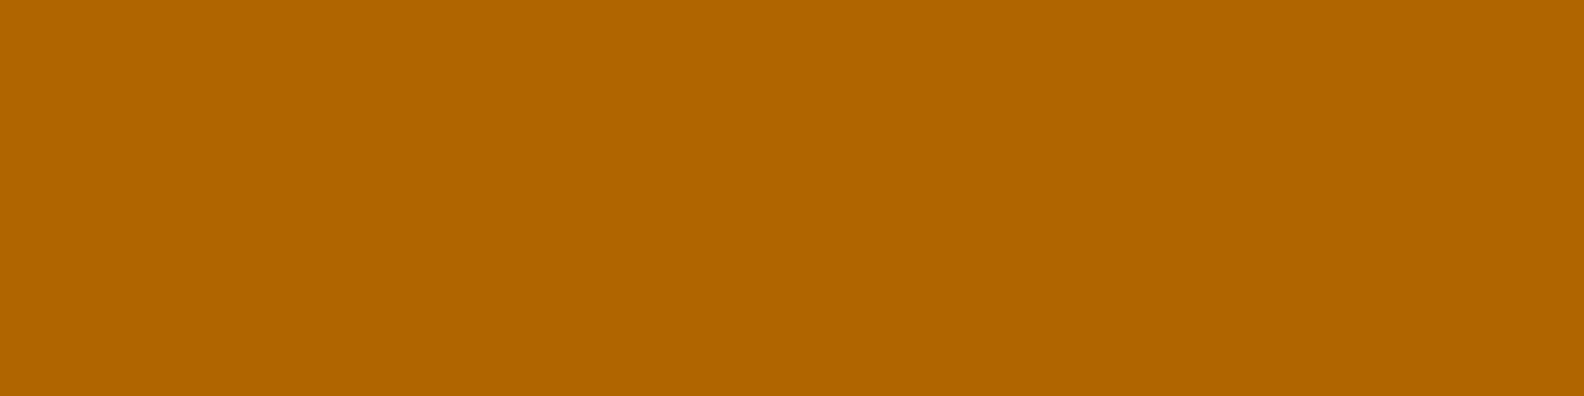 1584x396 Ginger Solid Color Background